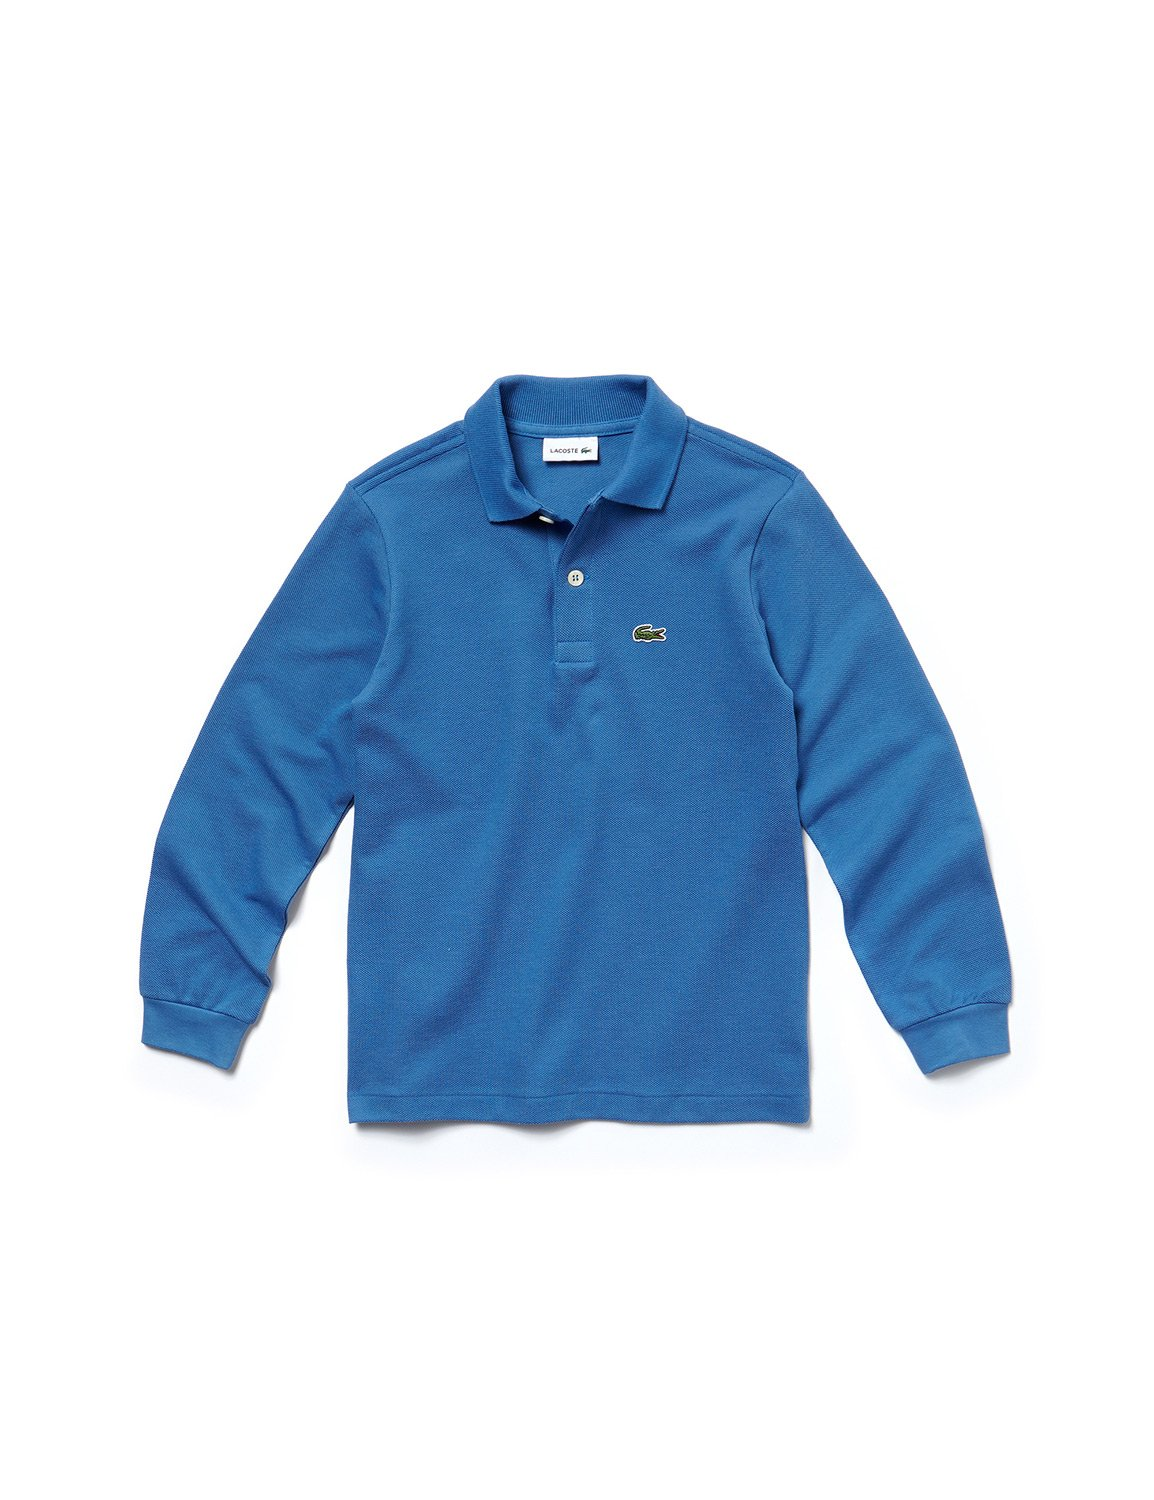 Lacoste Boy's Blue Long Sleeve Pique Polo in Size 4 Years (104 cm) Blue by Lacoste